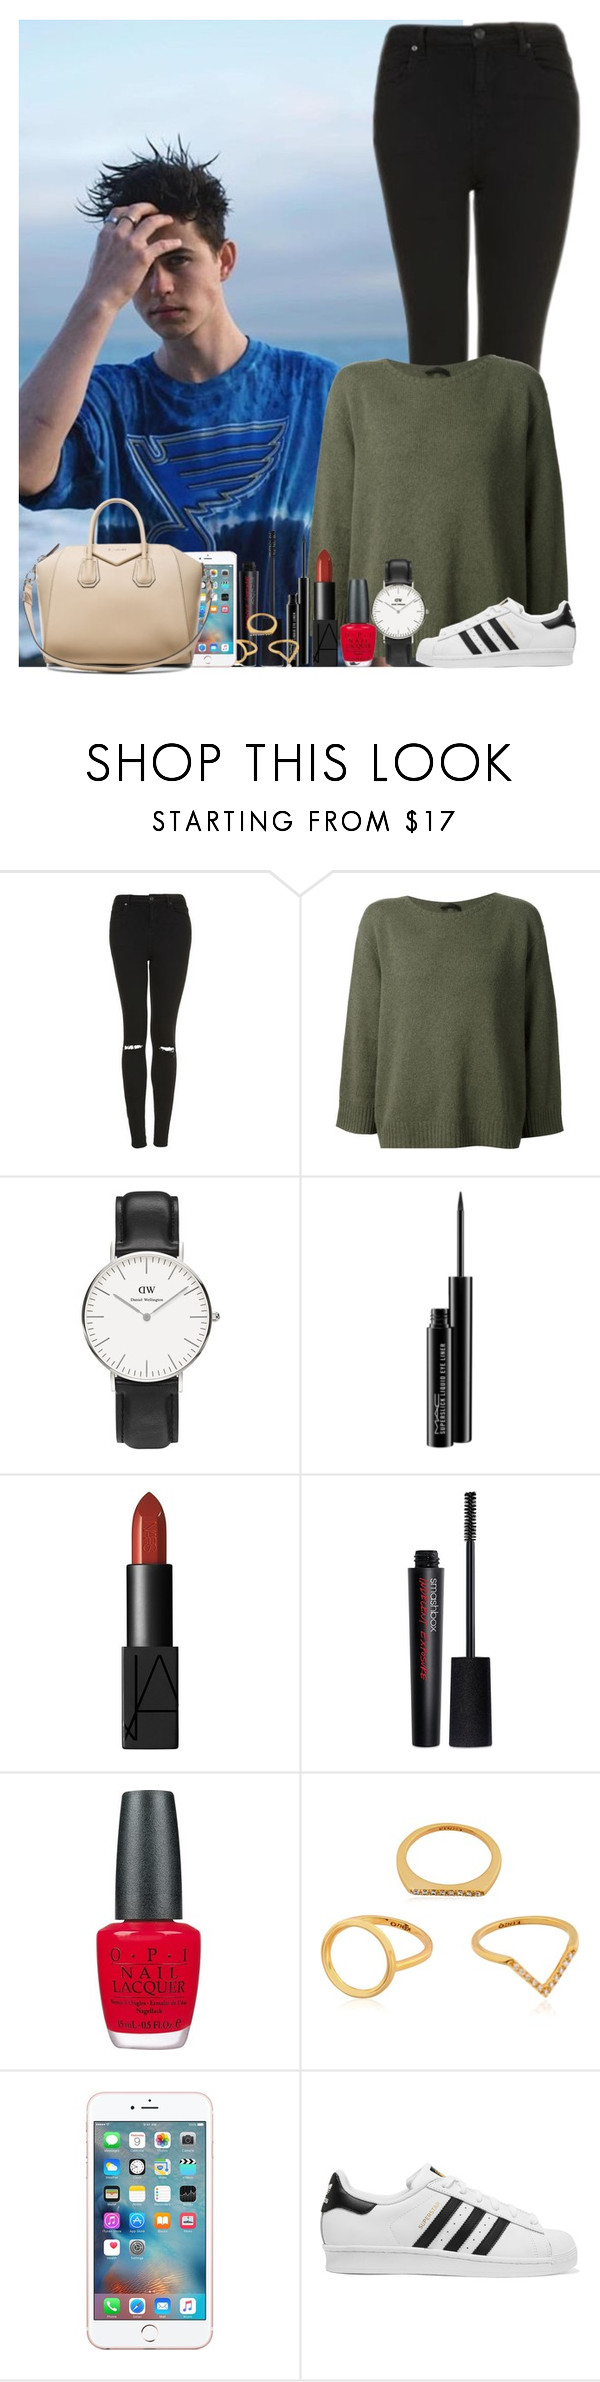 """Sans titre #1483"" by irish26-1 ❤ liked on Polyvore featuring Topshop, The Row, Daniel Wellington, MAC Cosmetics, NARS Cosmetics, Smashbox, OPI, Kenzo, adidas Originals and Givenchy"